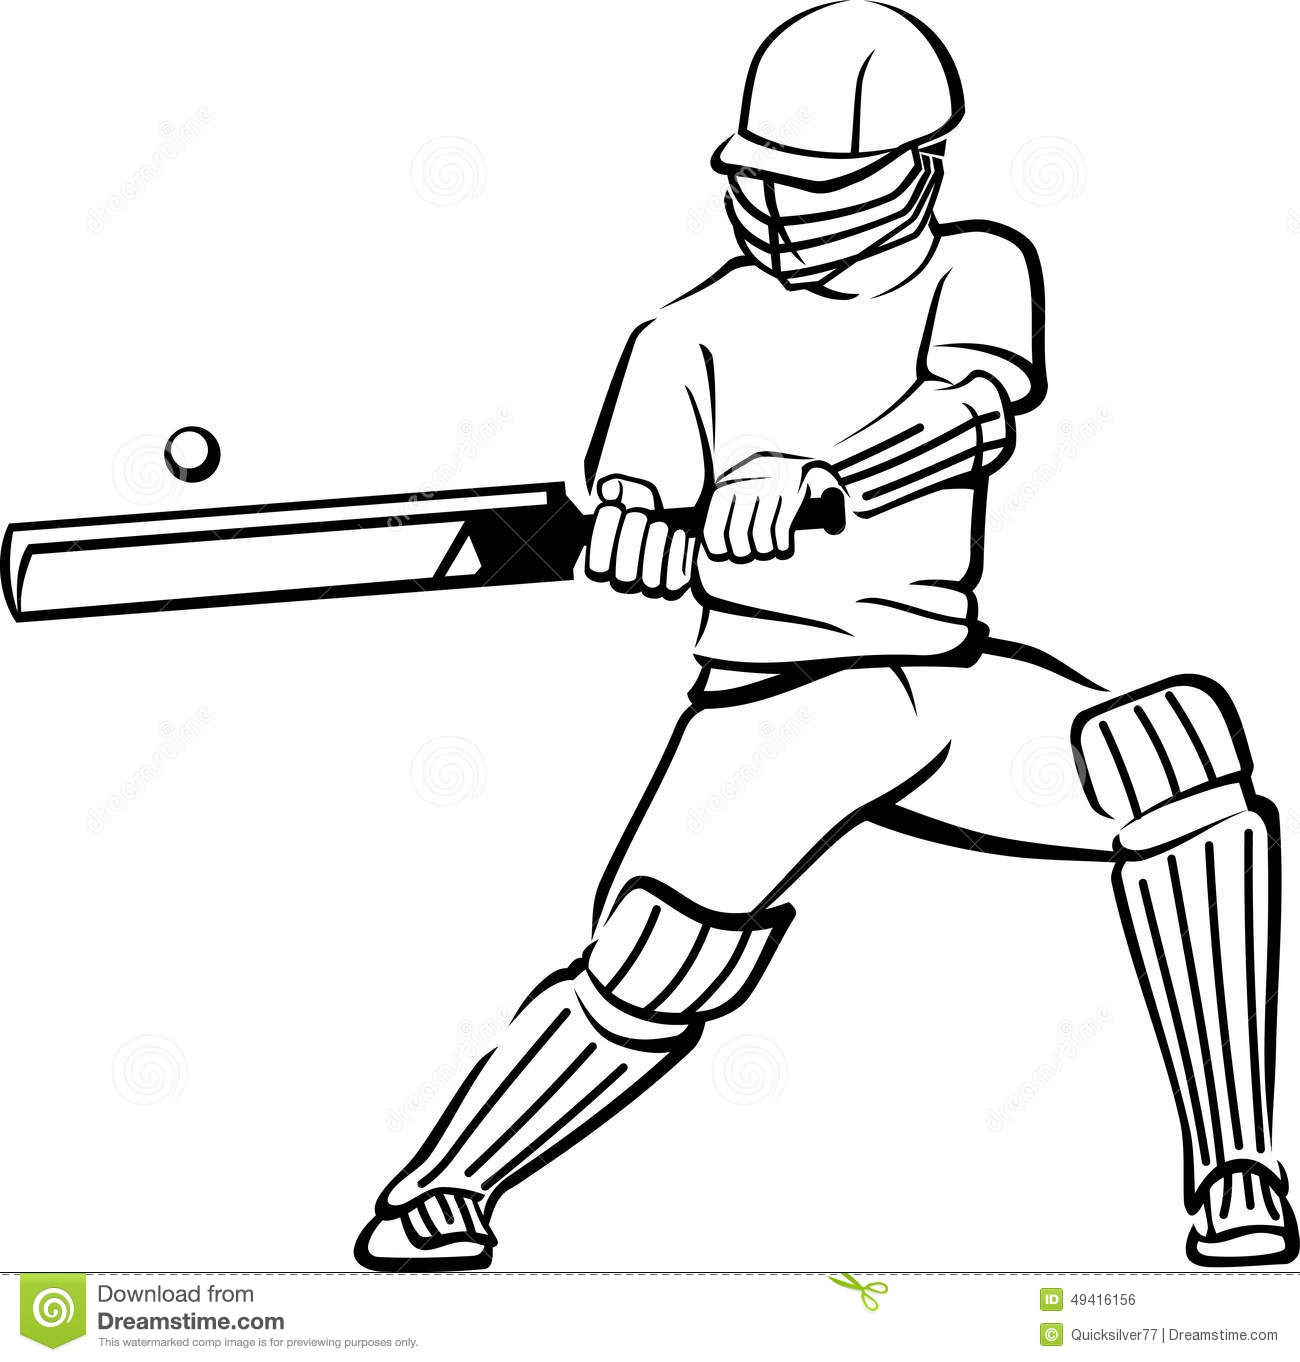 How To Grip The Ball To Bowl In-Swing: Cricket Tips - YouTube